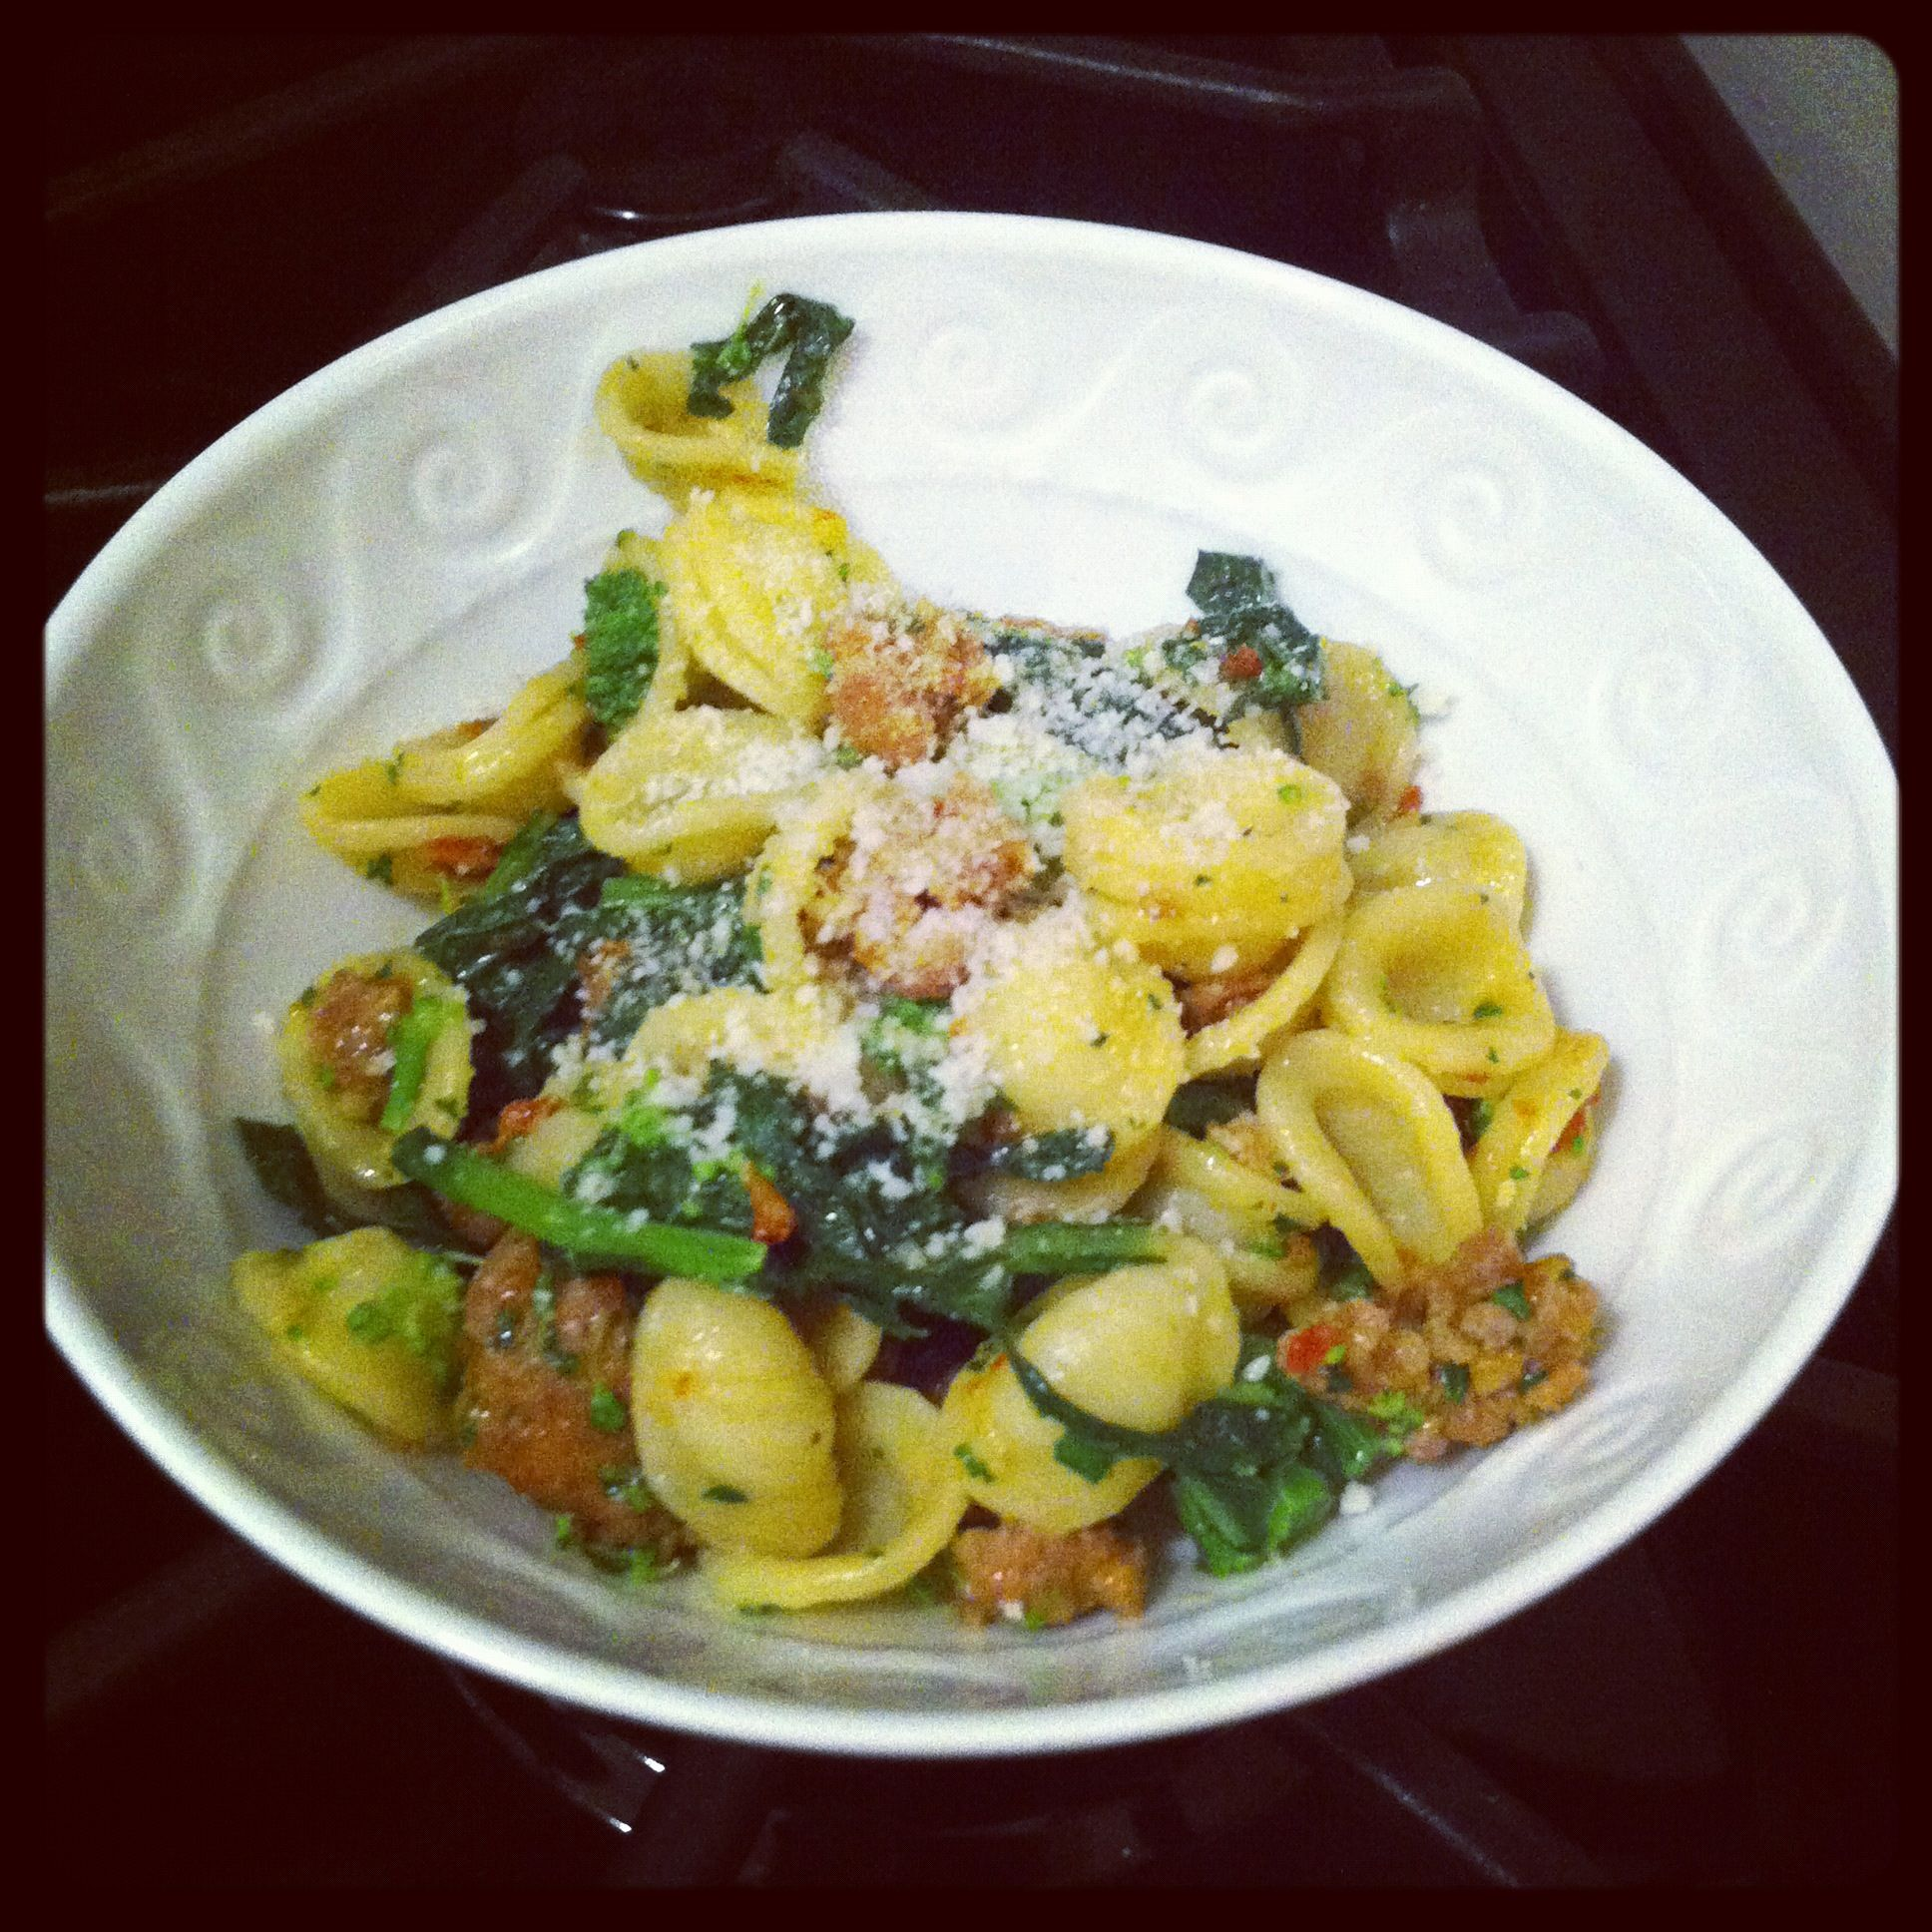 broccoli rabe broccoli rabe with pasta and recipe flash pasta with ...